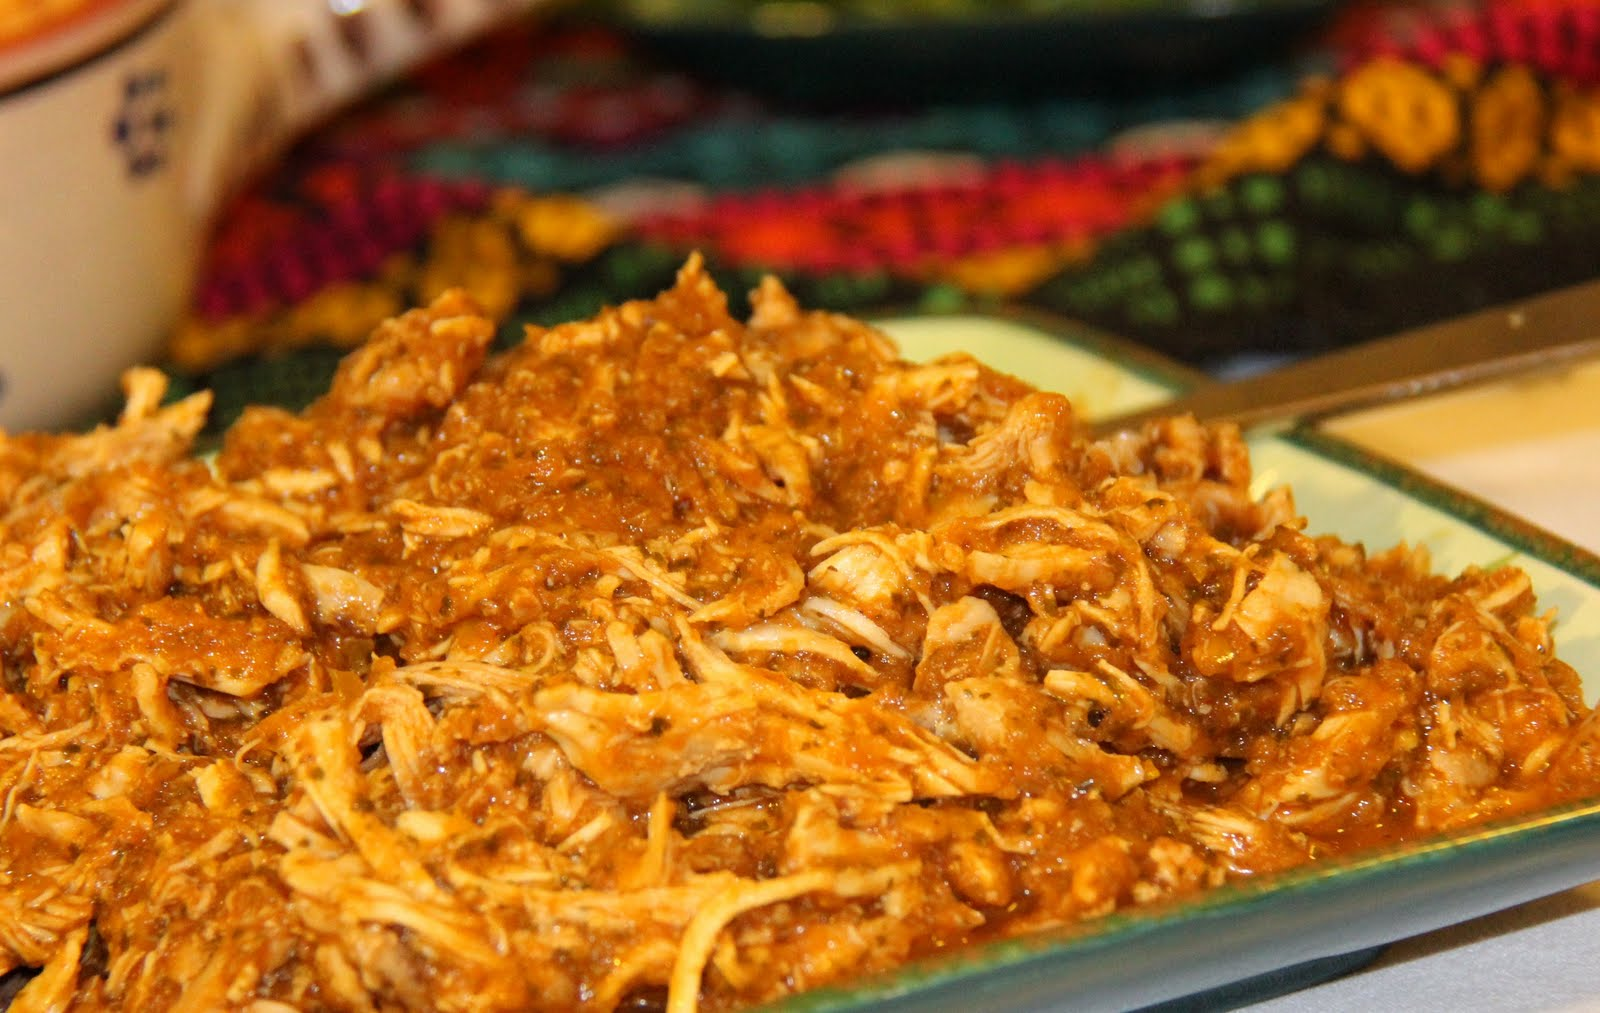 Shredded Chicken Tacos Recipe Images & Pictures - Becuo